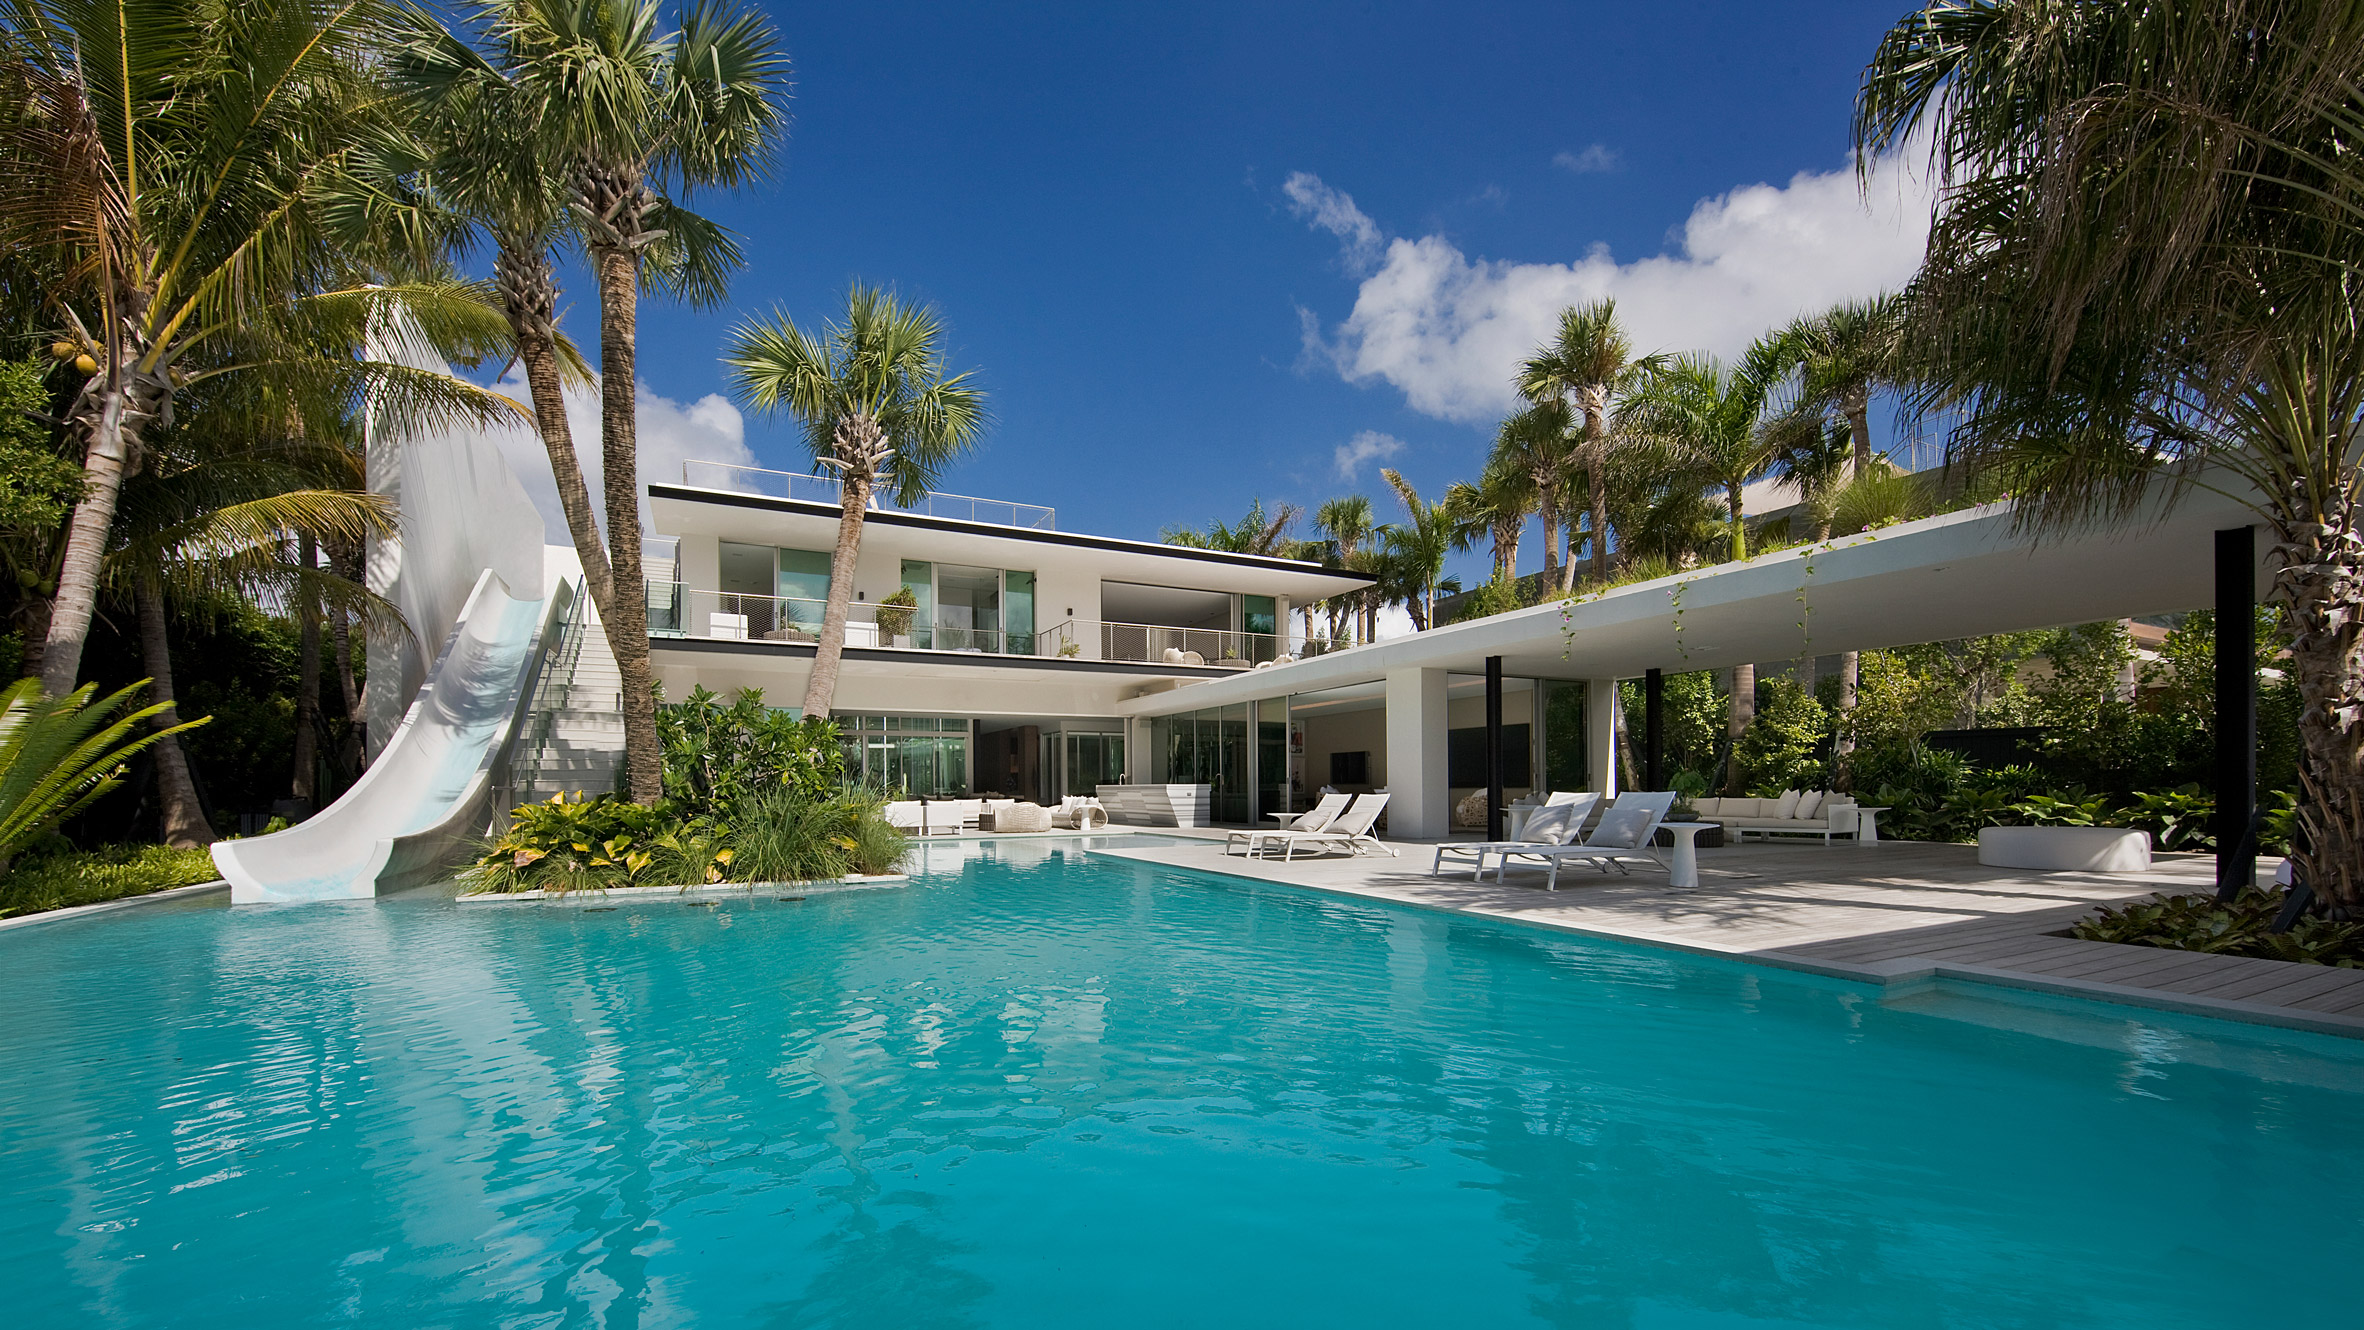 Miami Beach residence takes indoor-outdoor living to the extreme